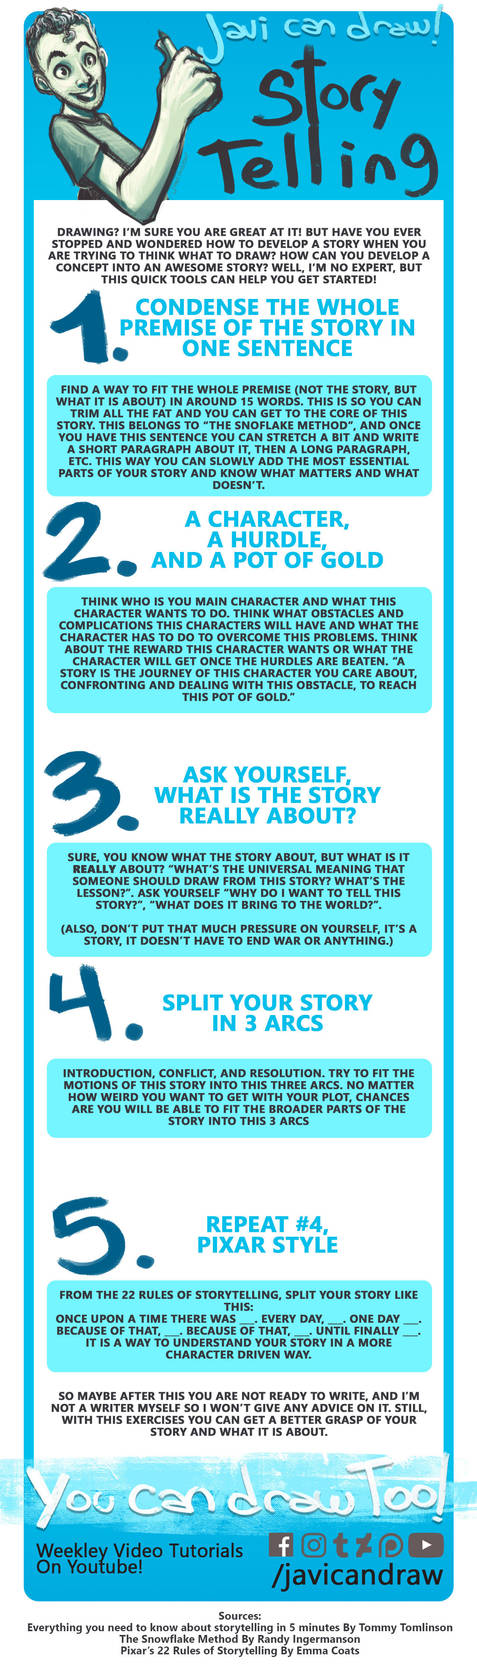 Tips on StoryTelling by javicandraw